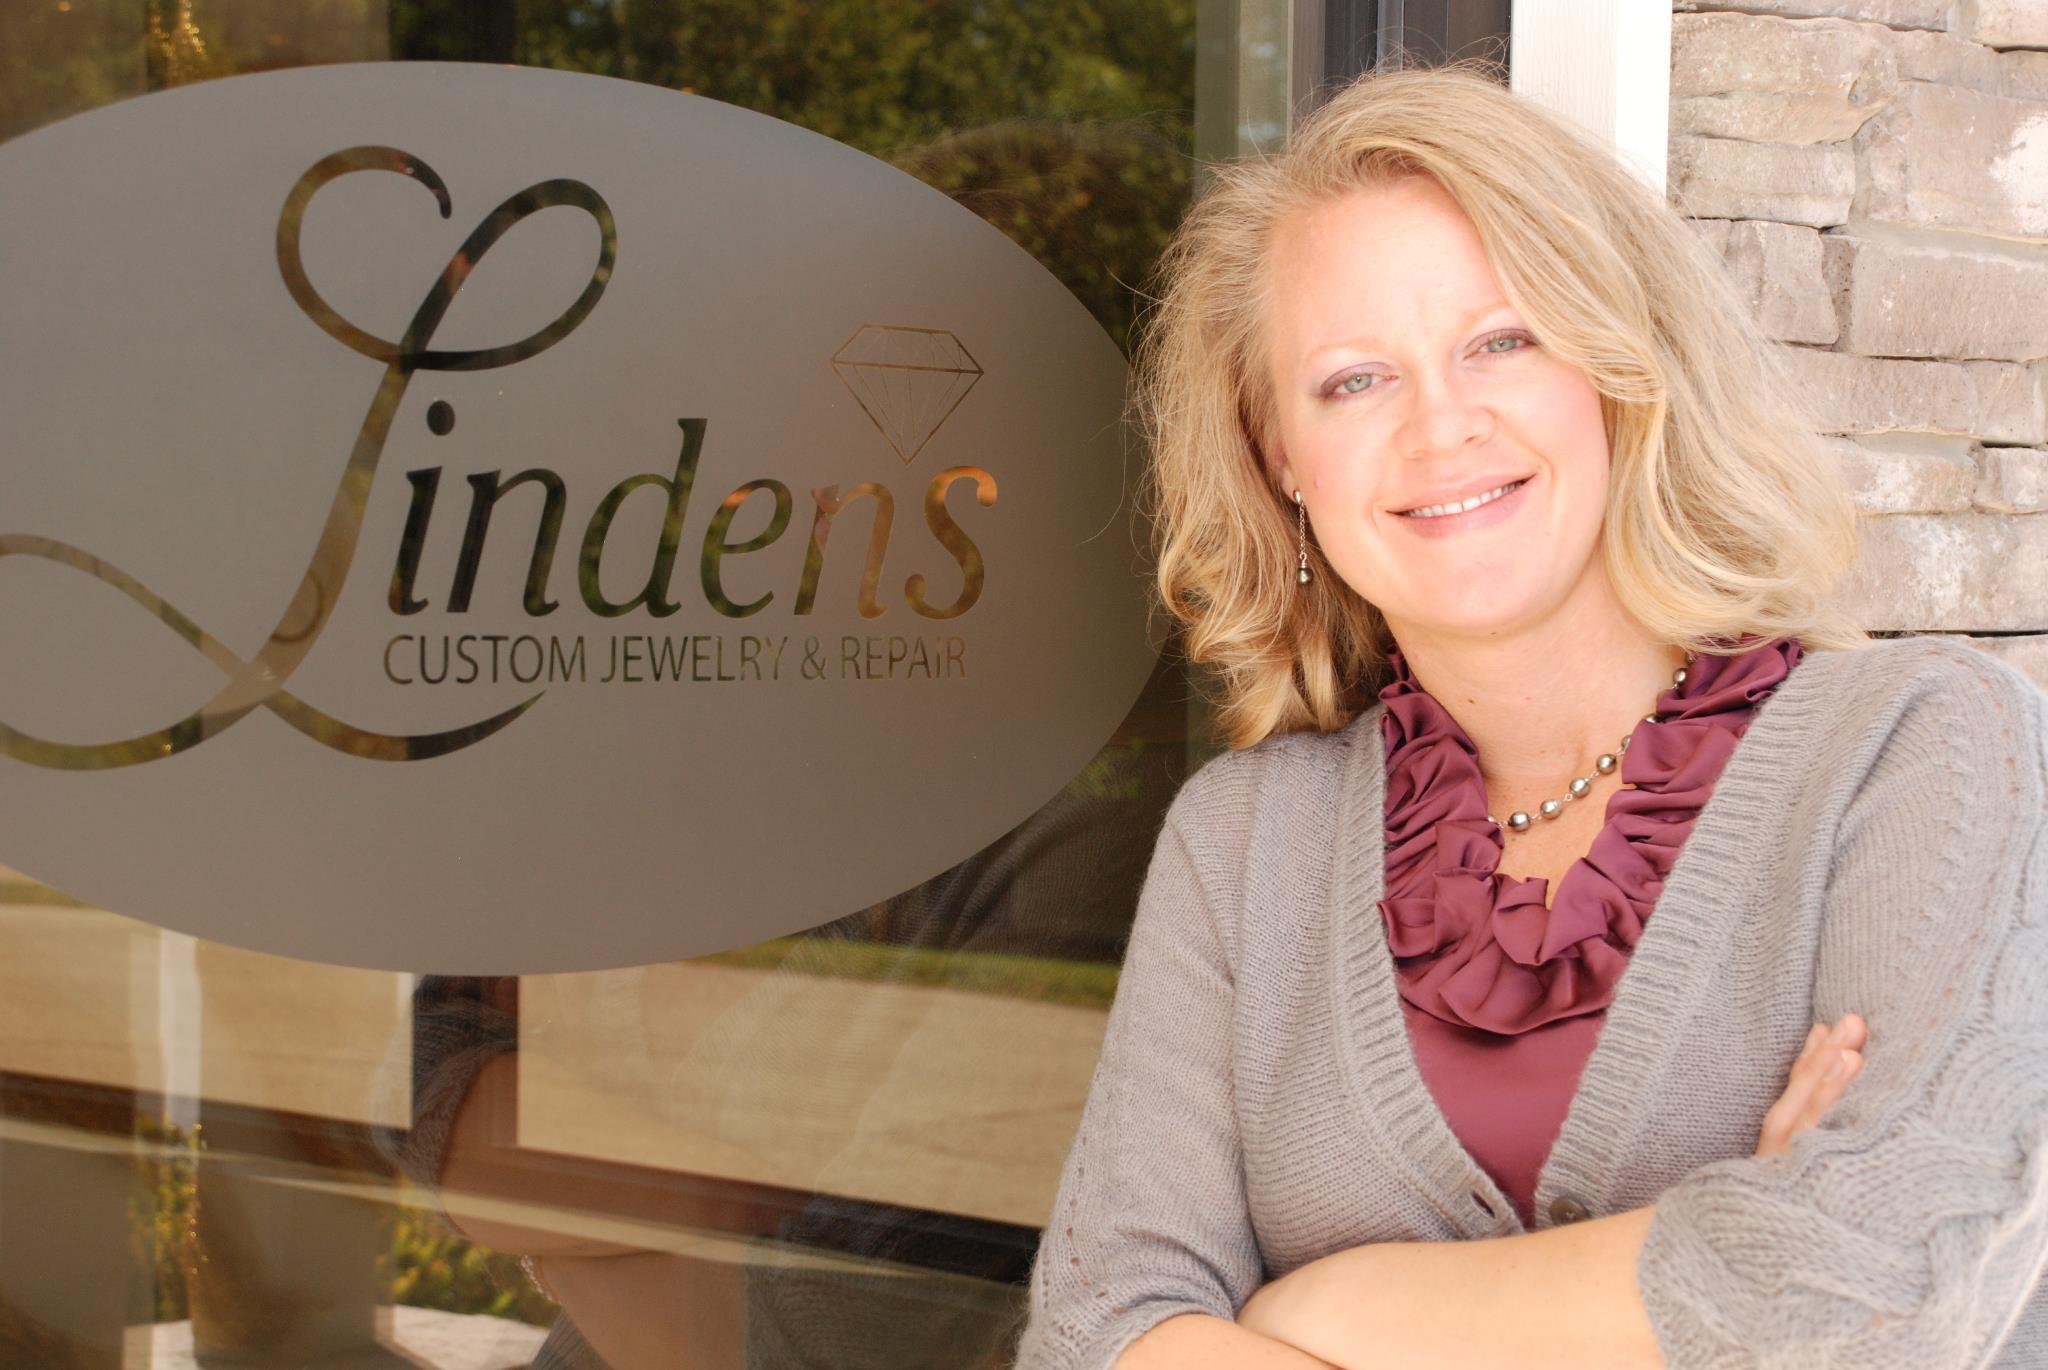 Linden's Custom jewelry & Diamonds - Ashley Linden